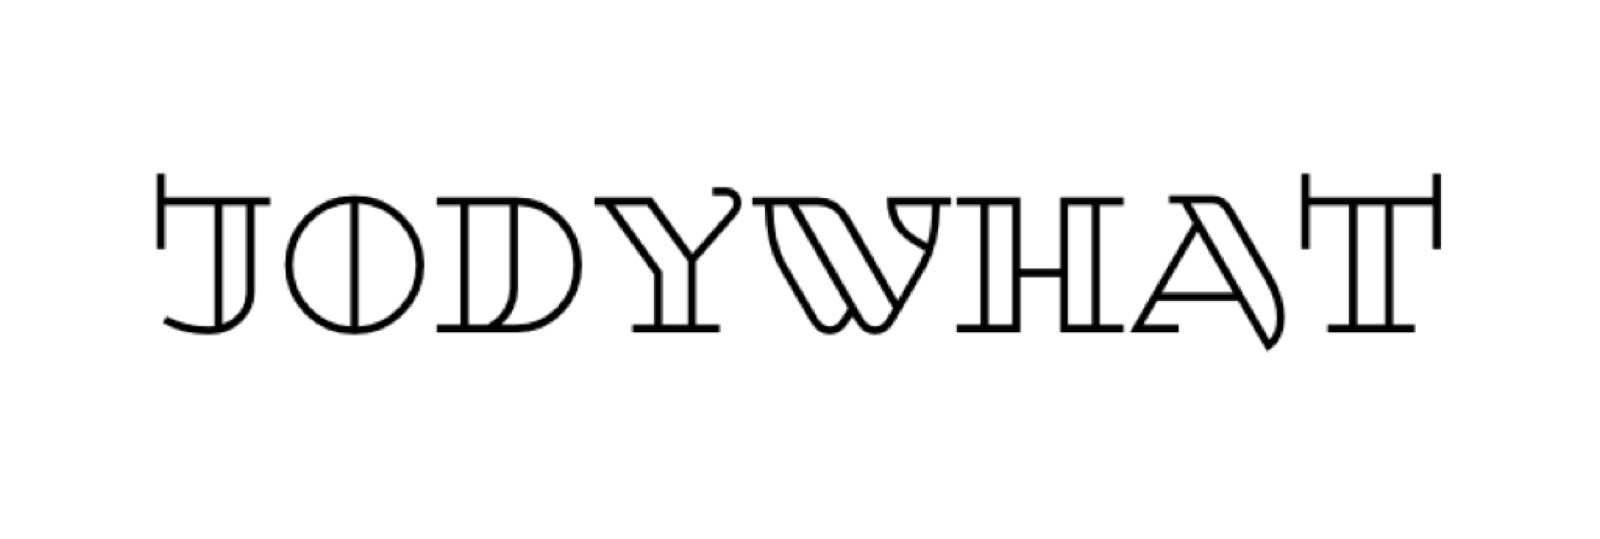 Jodywhat: The Mermaid Lifestyle & Beauty Blog